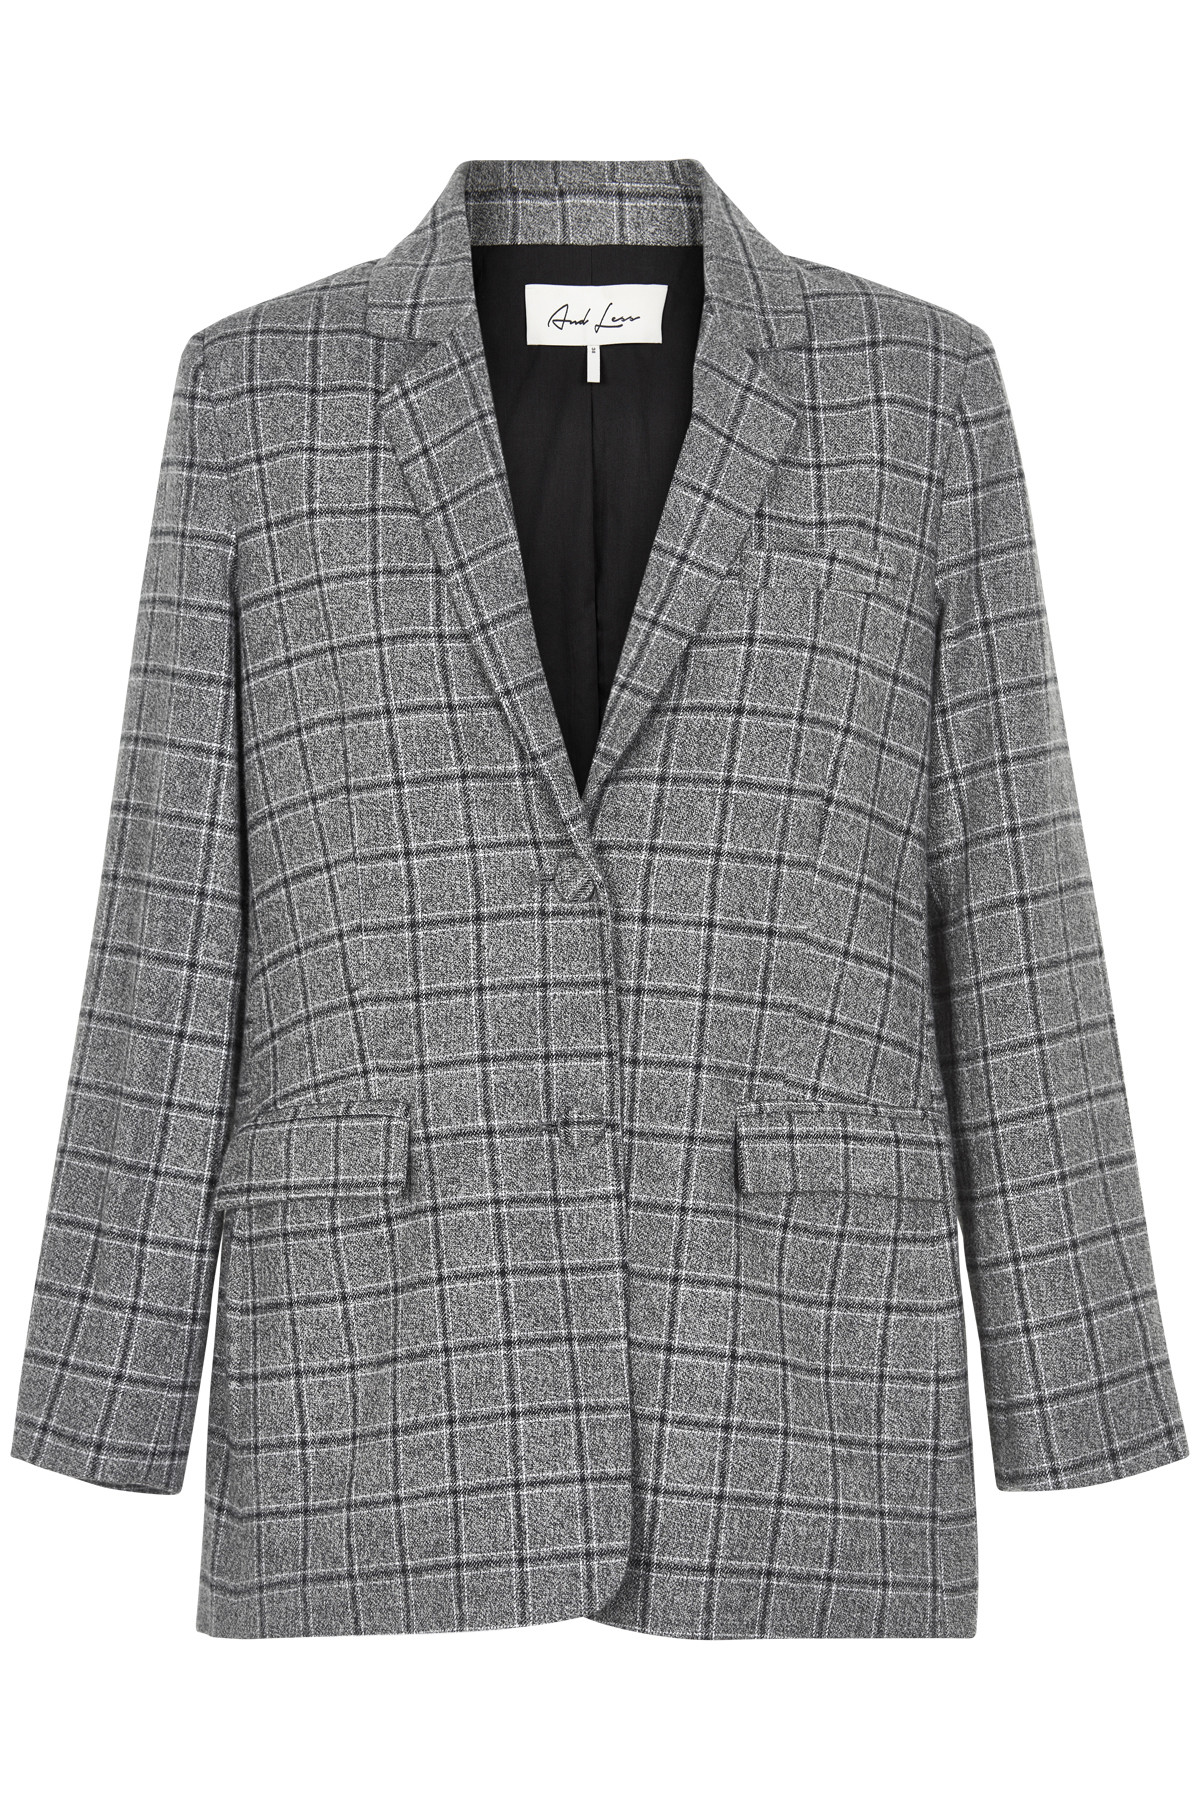 Image of   AND LESS CHARLOTI BLAZER 5119902 (Caviar Check, 34)